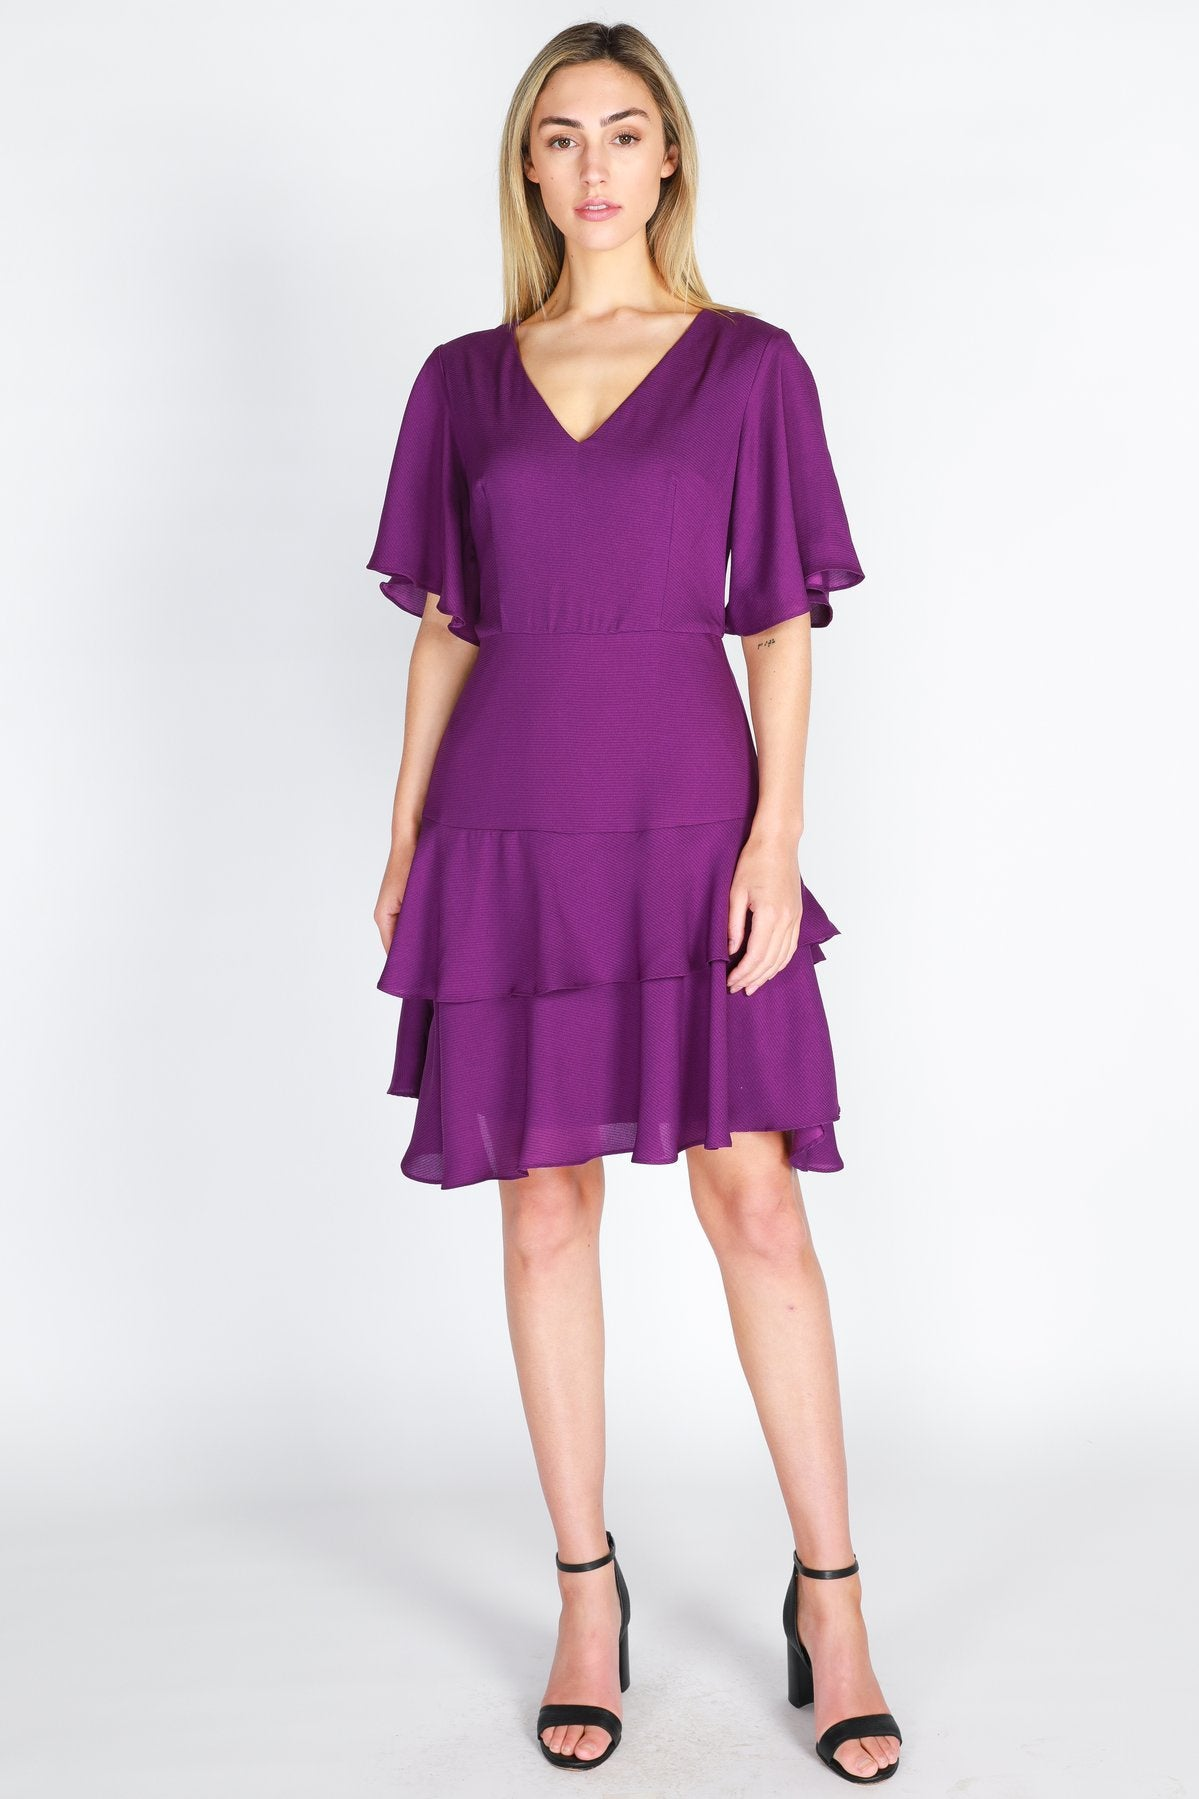 Violet Dress by 3rd Love